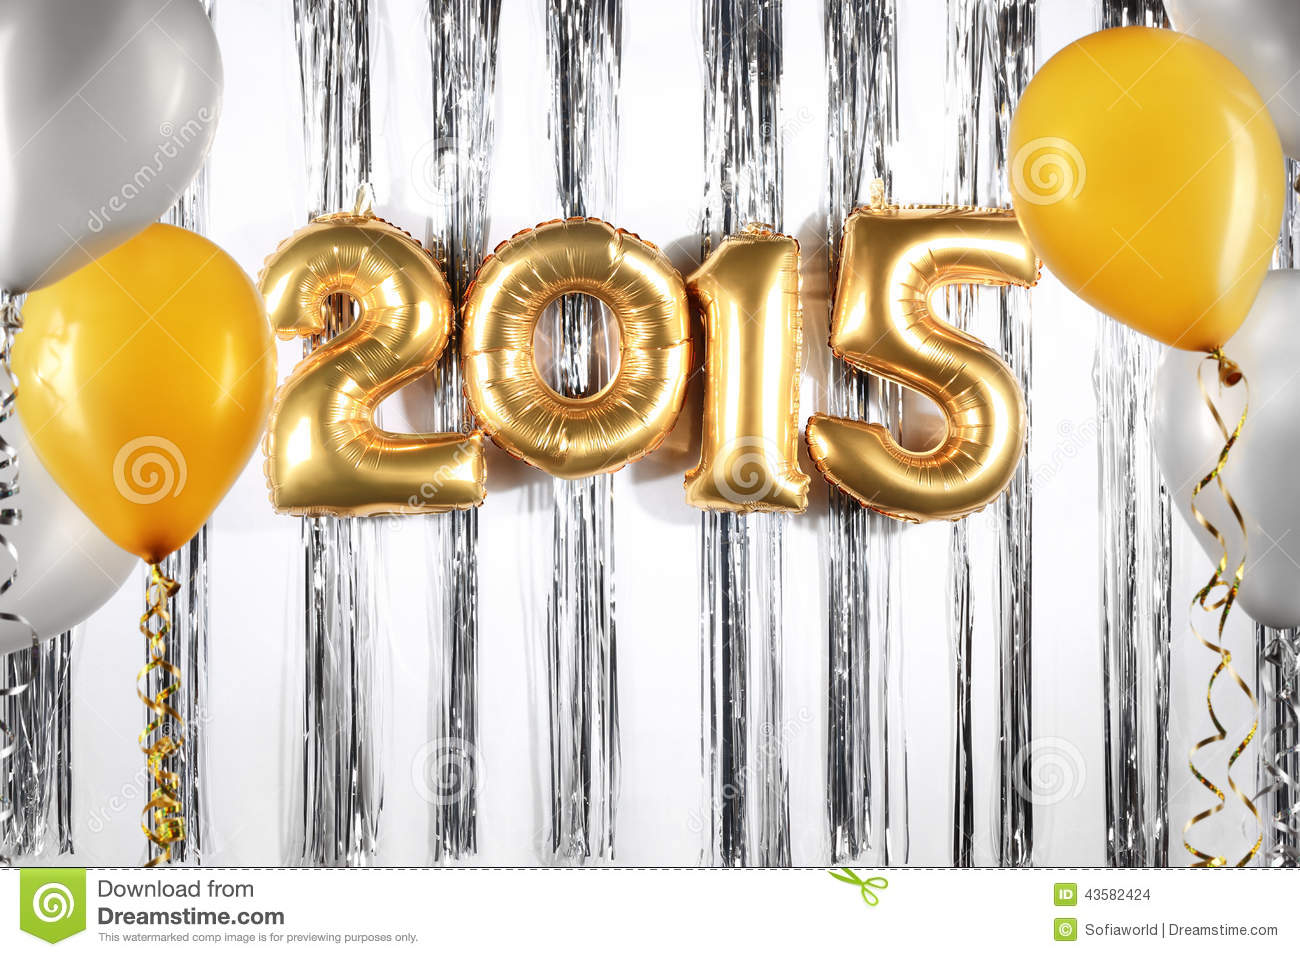 New Year 2015 Stock Photo Image Of Decorative Silver 43582424